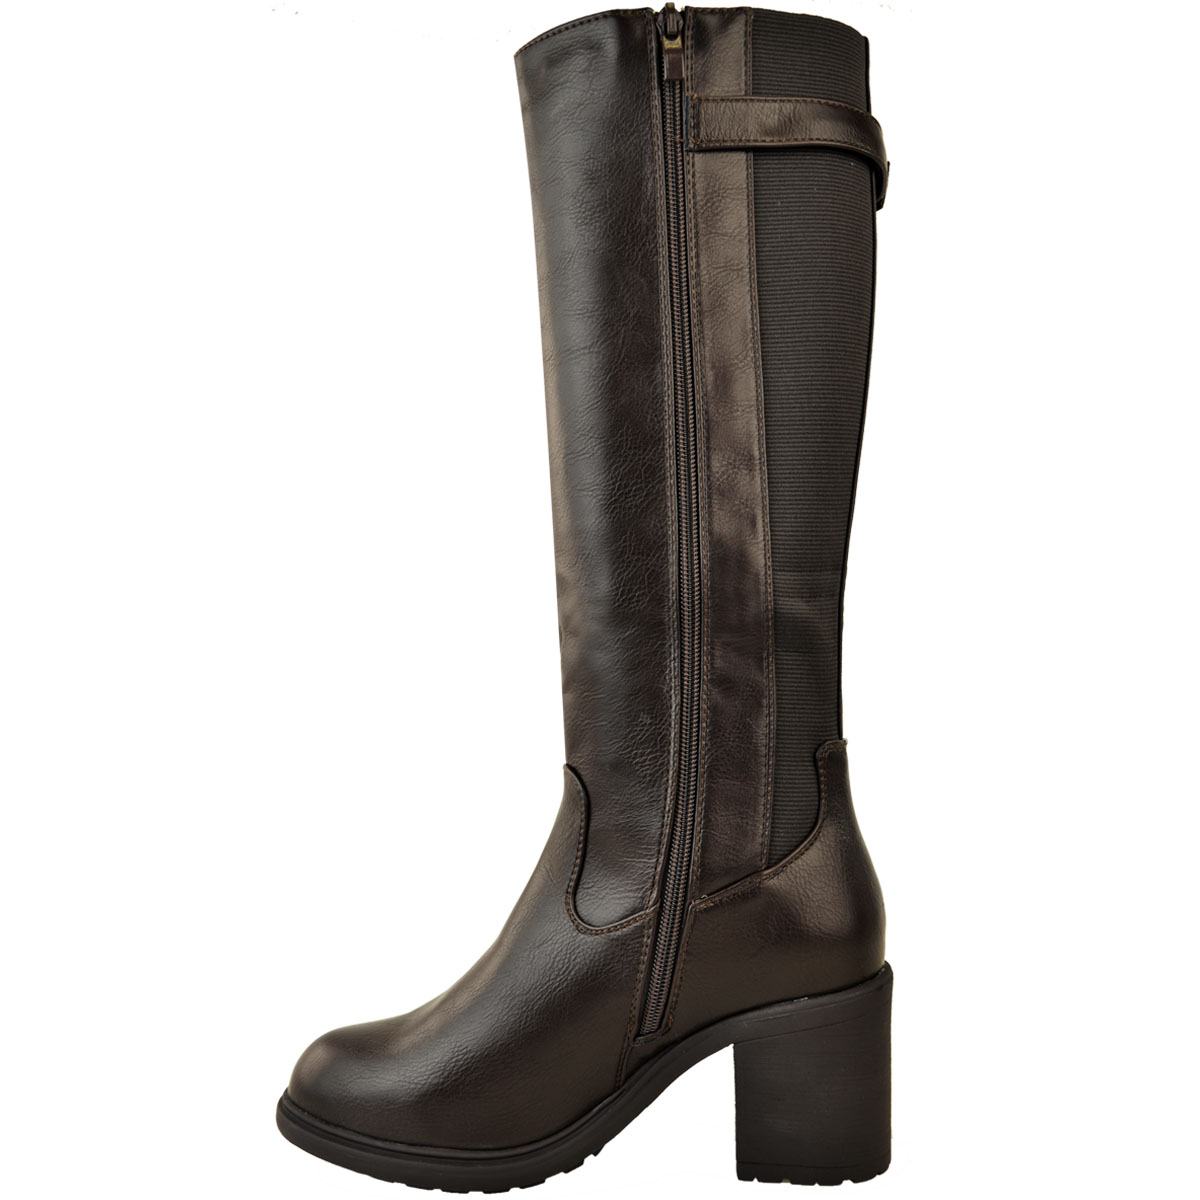 Womens-Ladies-Calf-High-Boots-Riding-Stretch-Wide-Leg-Low-Block-Heel-Winter-Size thumbnail 10